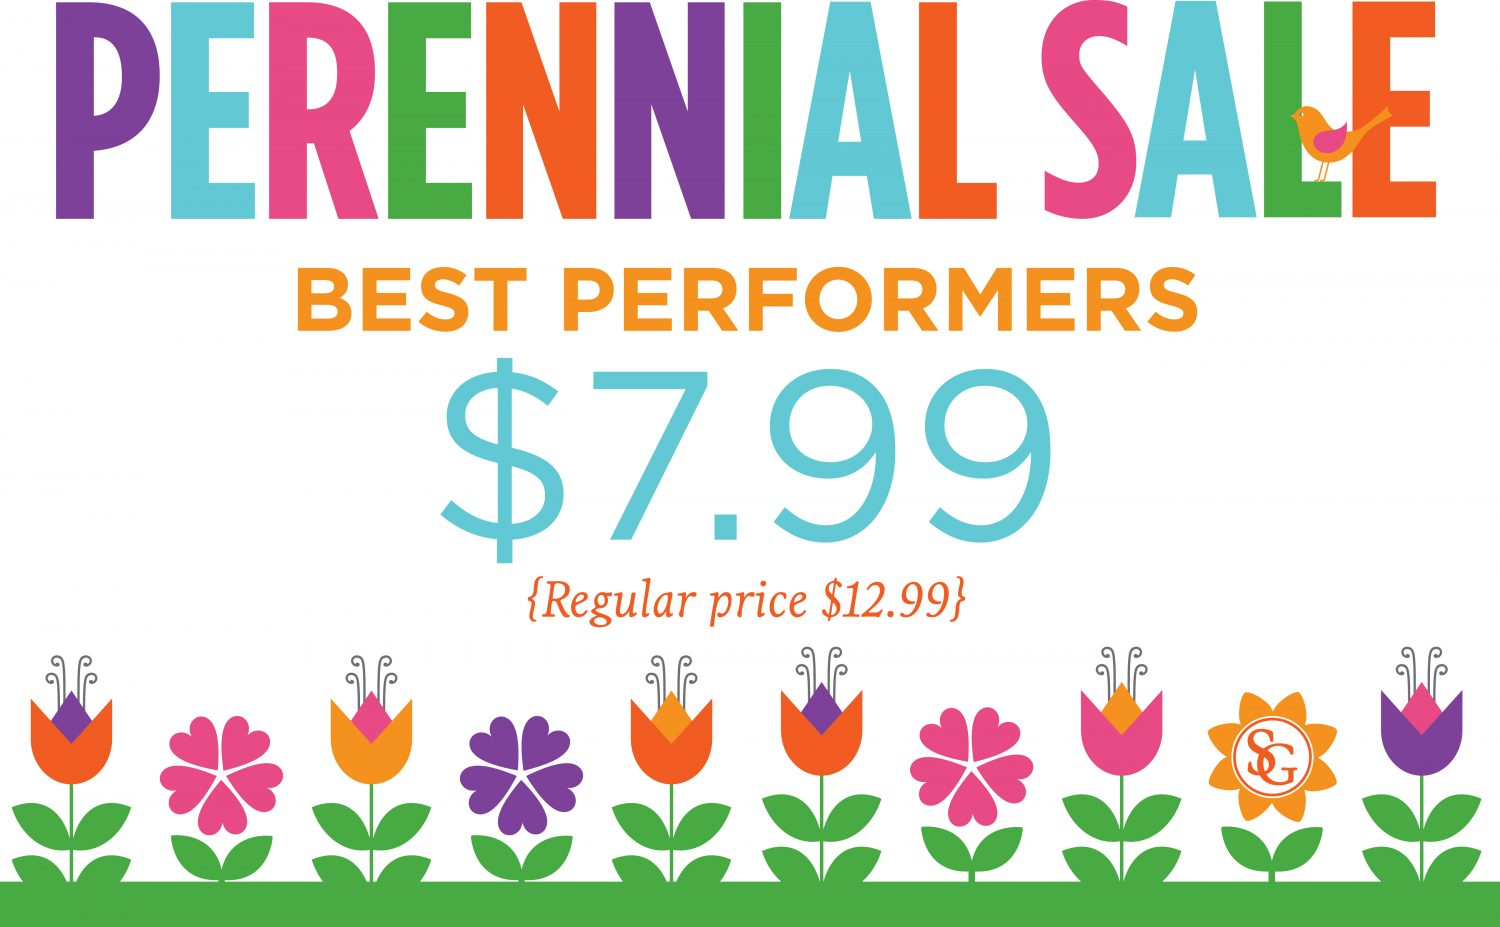 Perennial Sale Sign